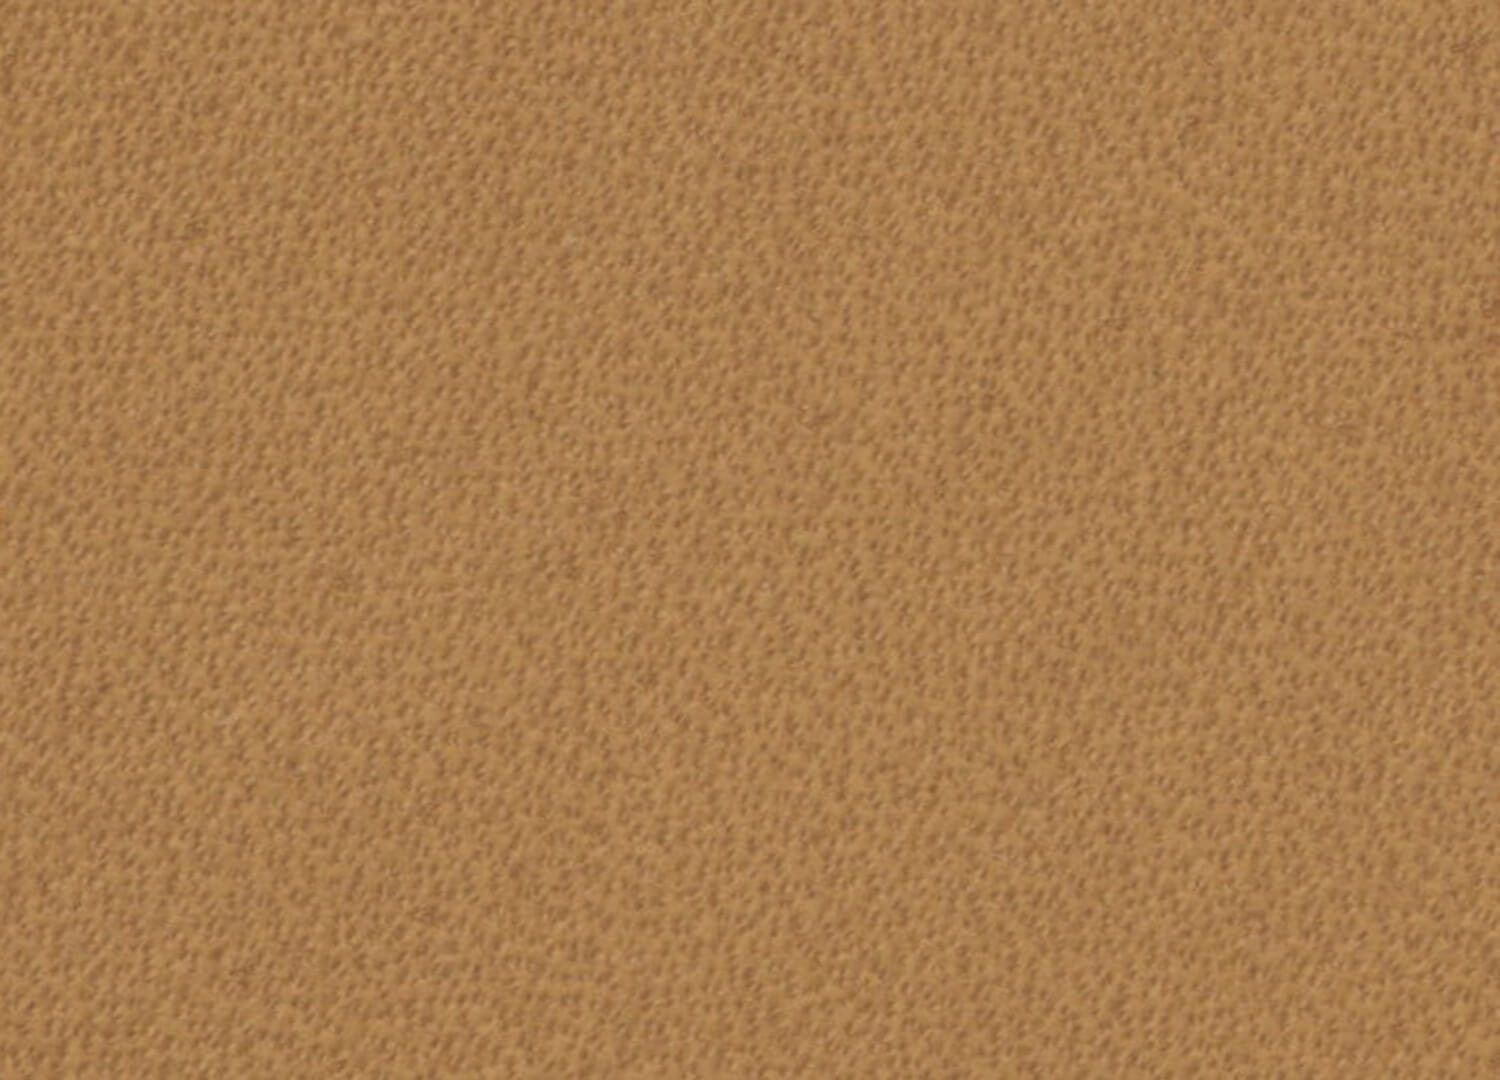 est living design directory saddle leather buckskin 1024x737 1